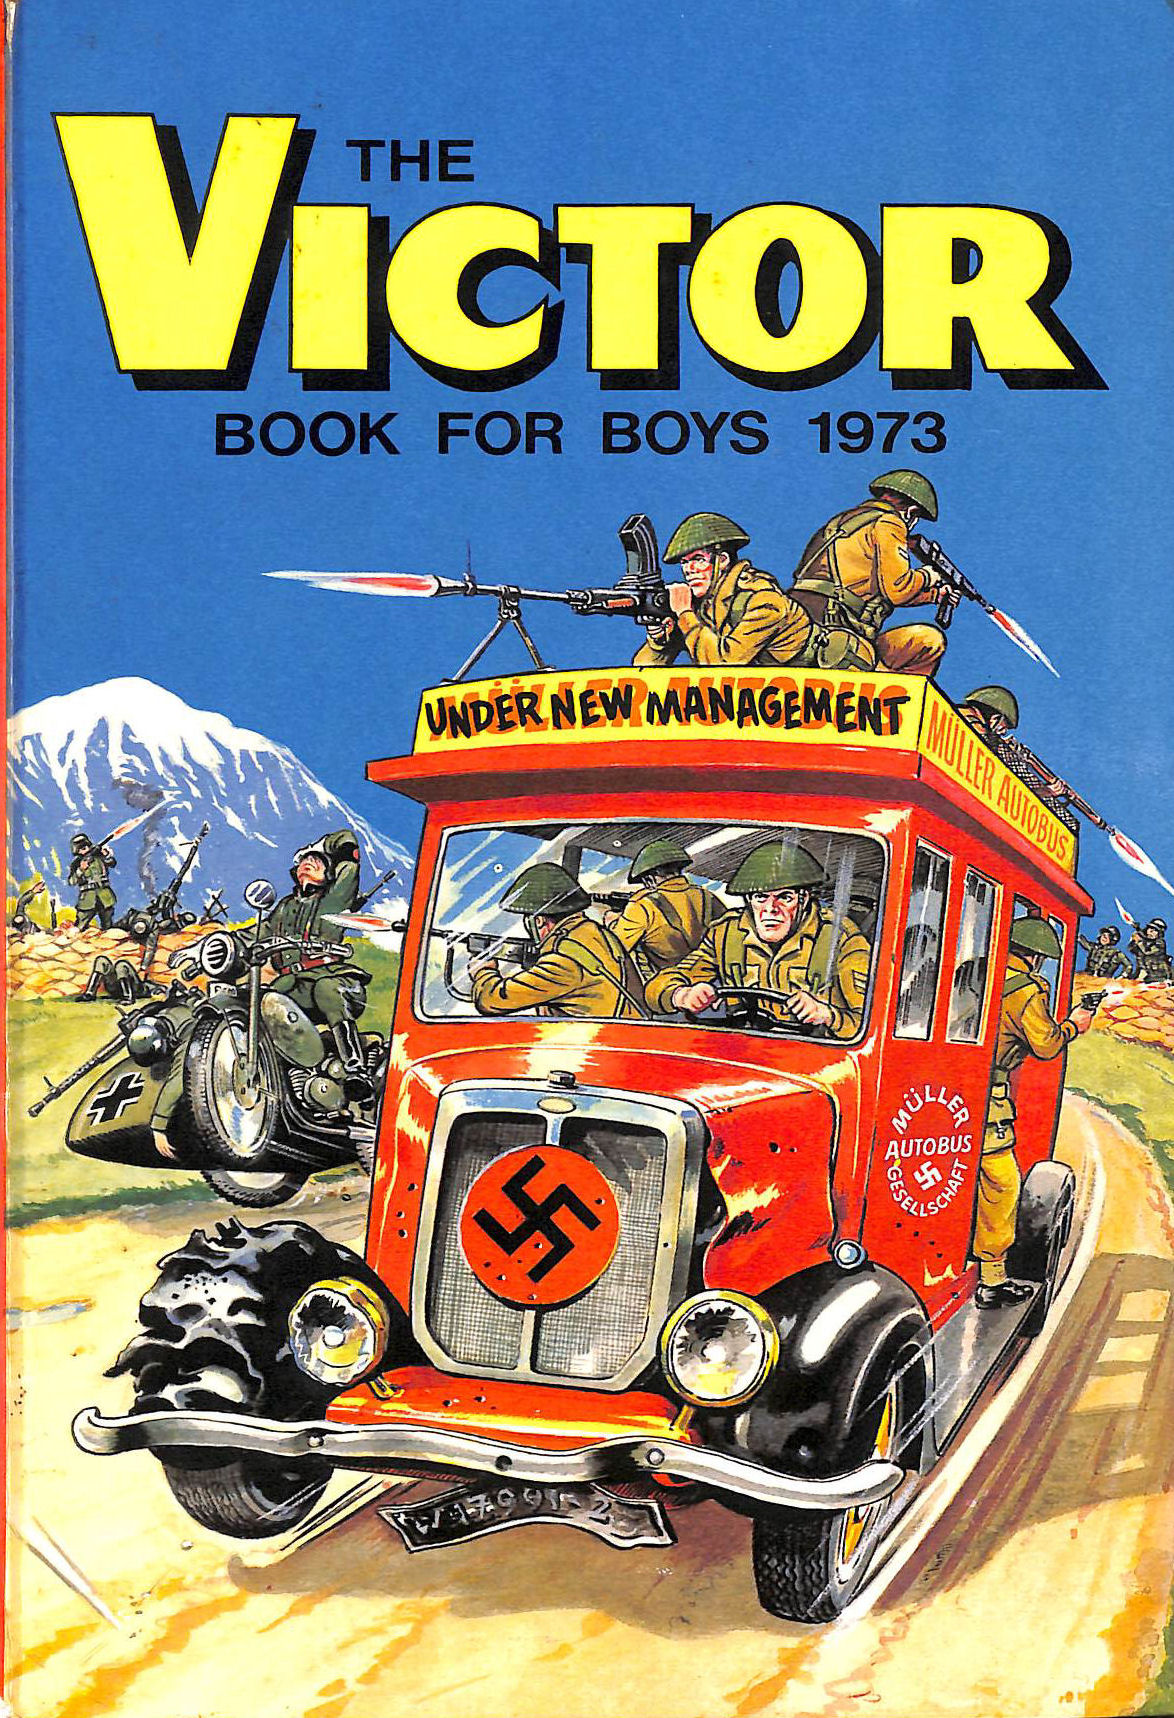 Image for the victor book for boys 1973